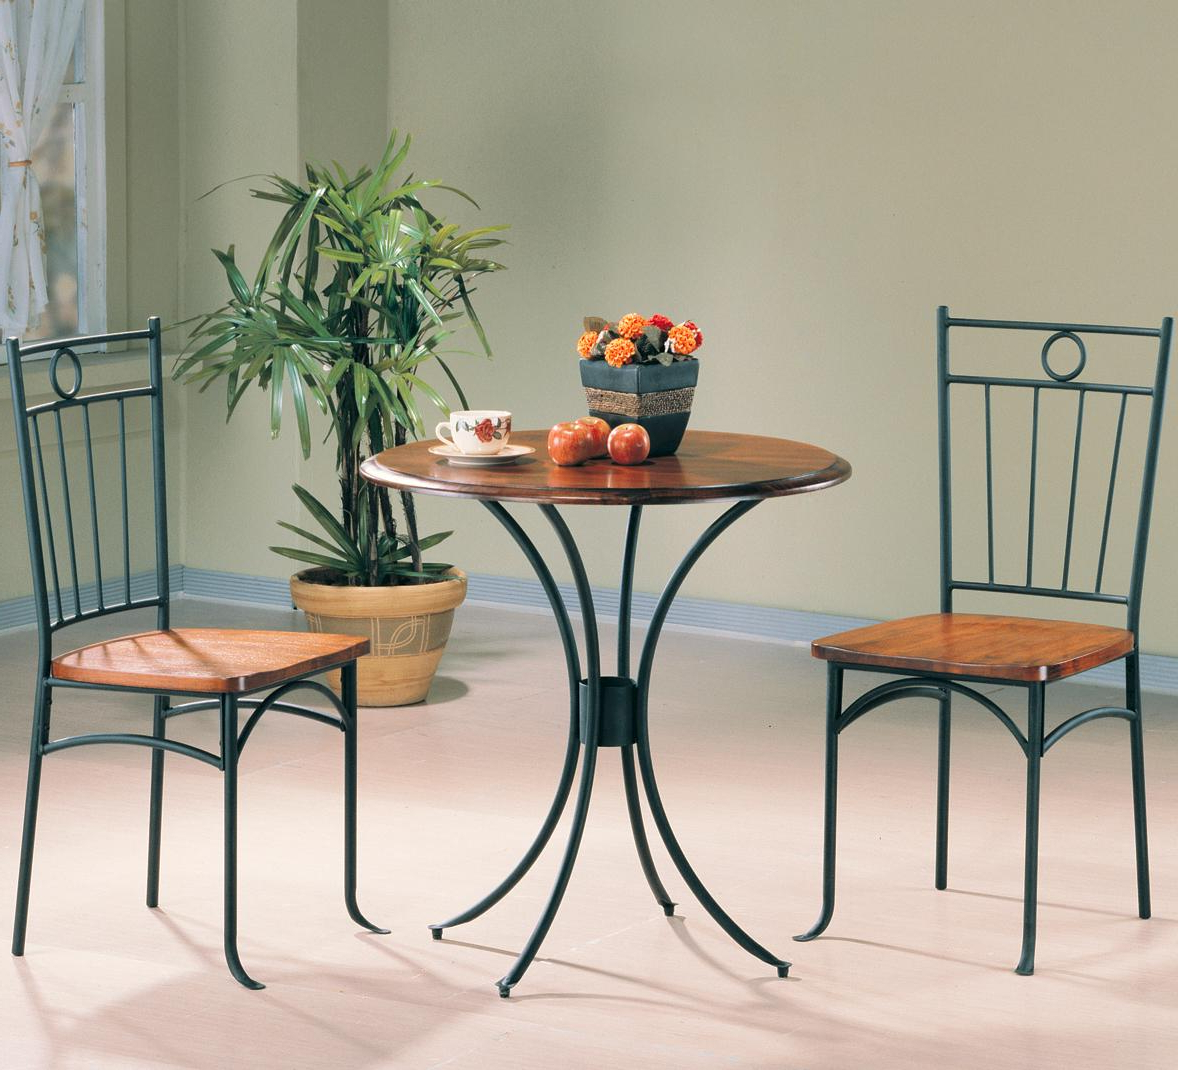 3 Piece Dining Sets Inside Newest Tamiami 3 Piece Bistro Dining Setcoaster At Value City Furniture (View 5 of 20)